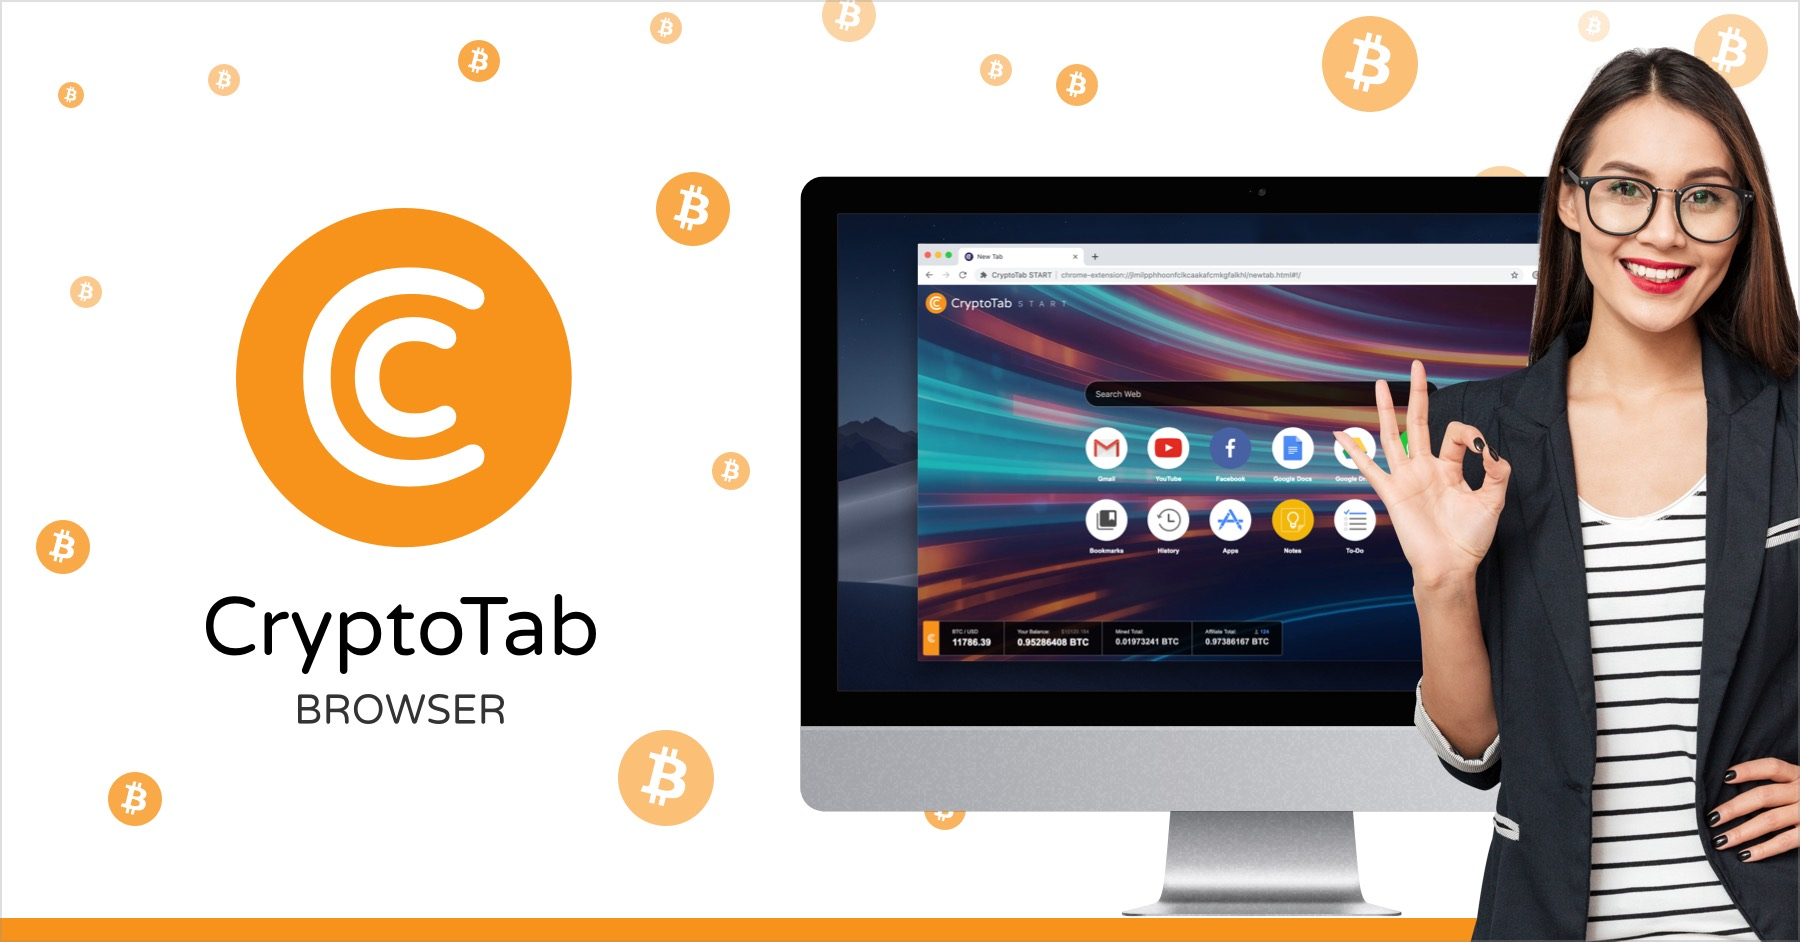 Check out the brand new CryptoTab browser!